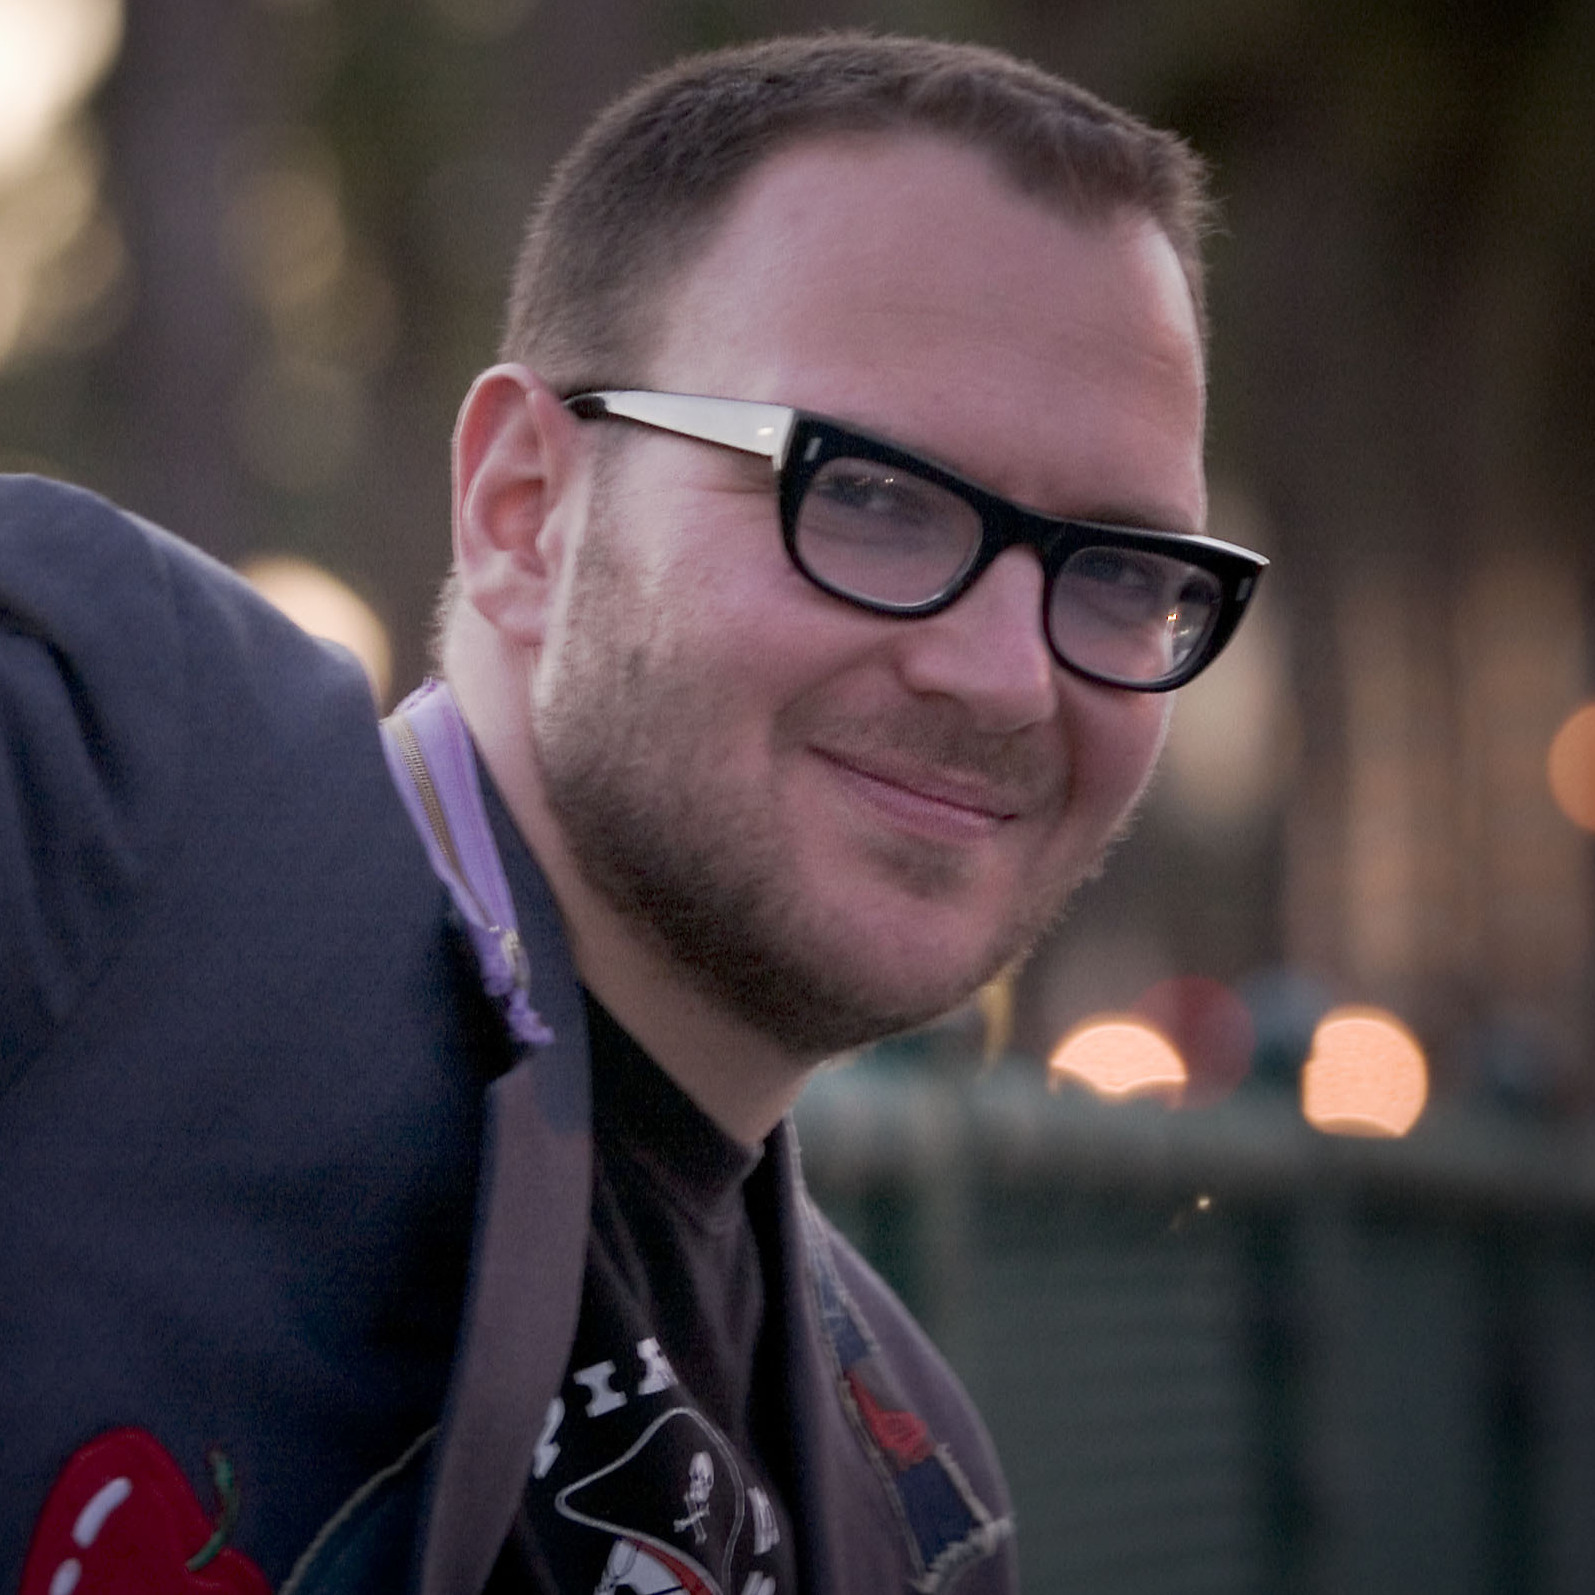 Cory Doctorow is an editor of the blog Boing Boing and an author of fiction including the novels Little Brother and Down and Out in the Magic Kingdom.